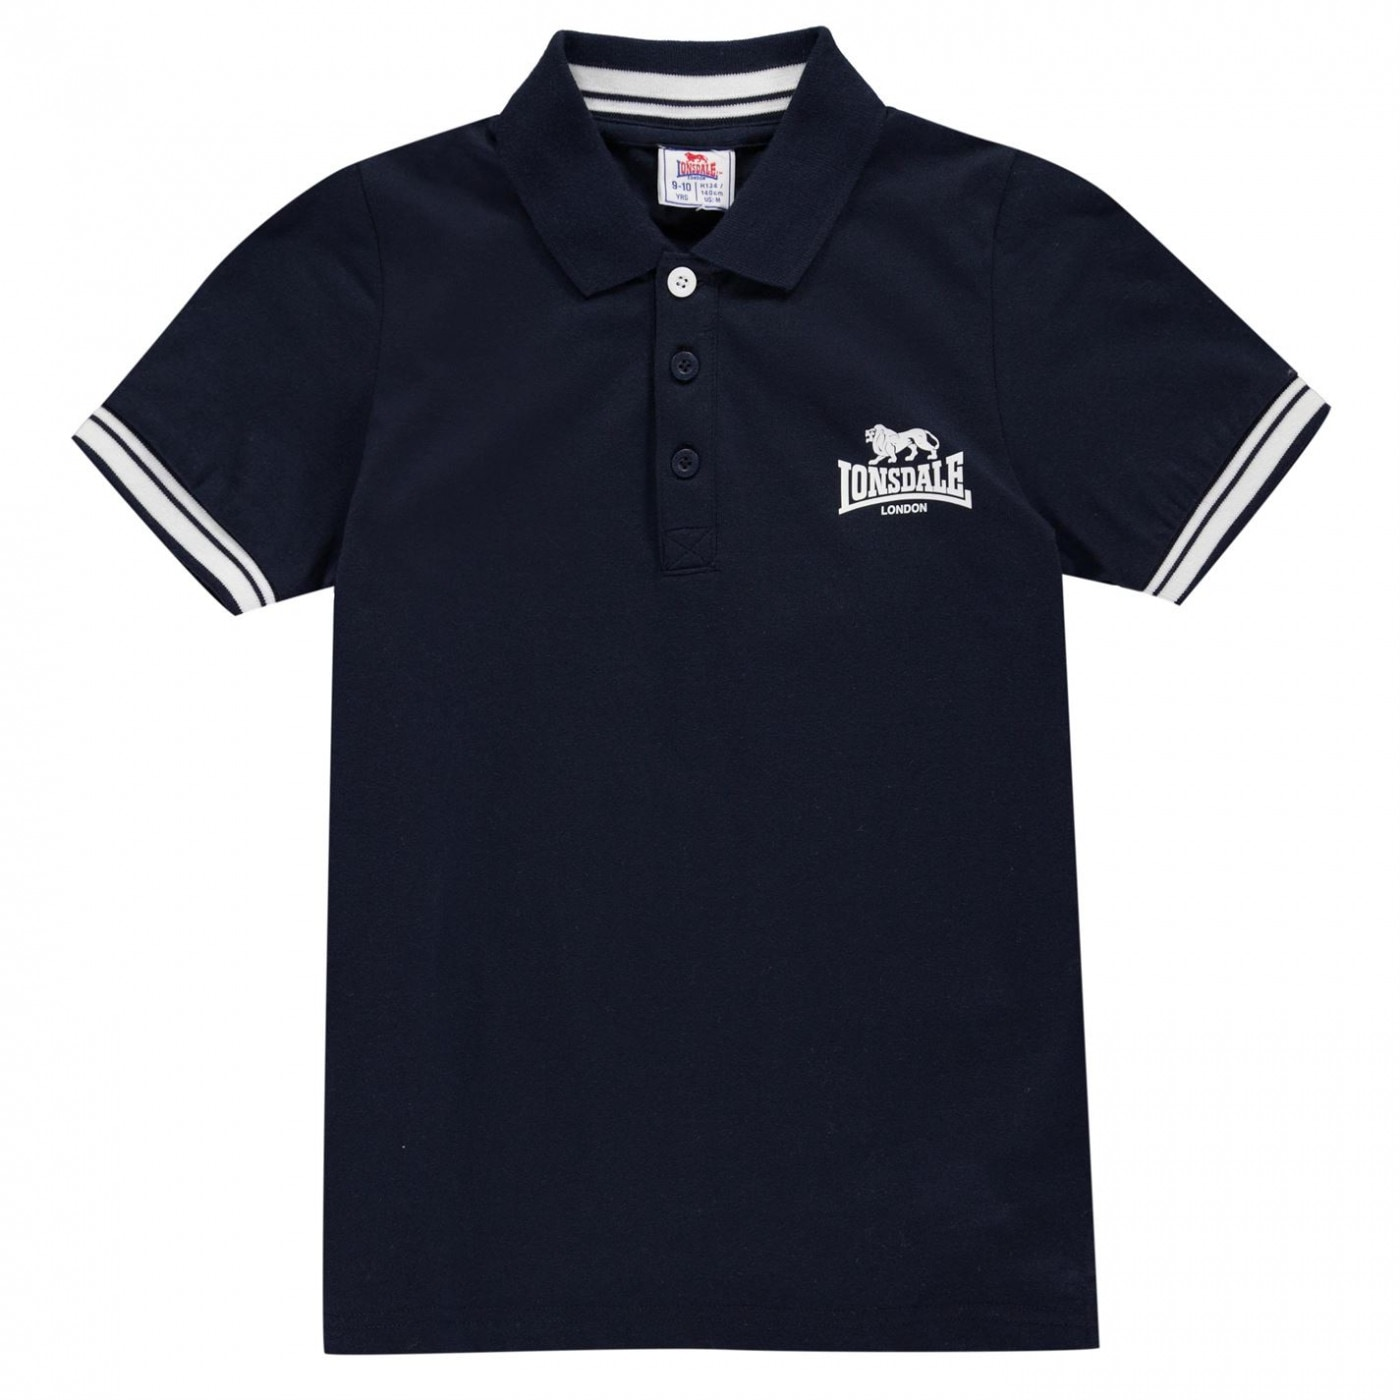 Lonsdale 2 Stripe Jersey Polo Junior Boys